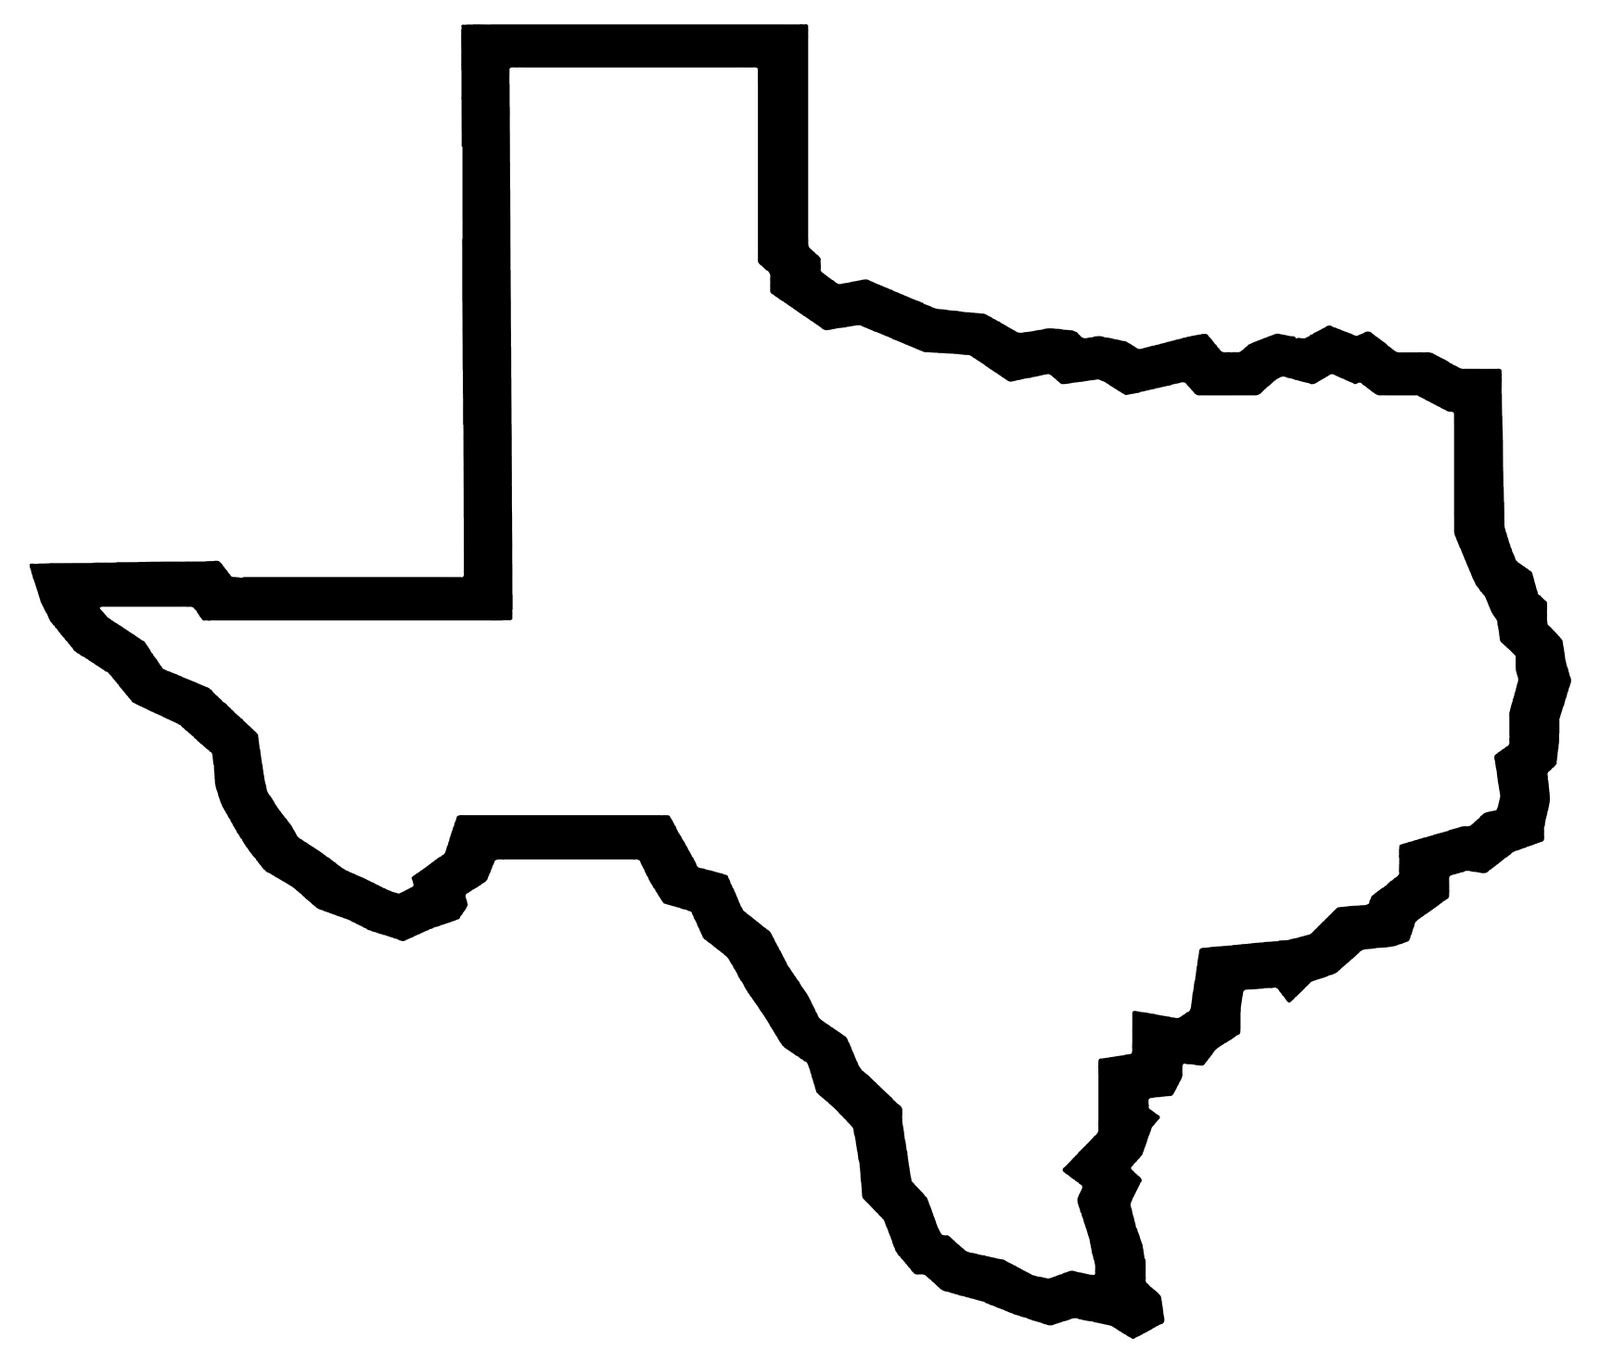 Texas outline clipart free clipart images 3.